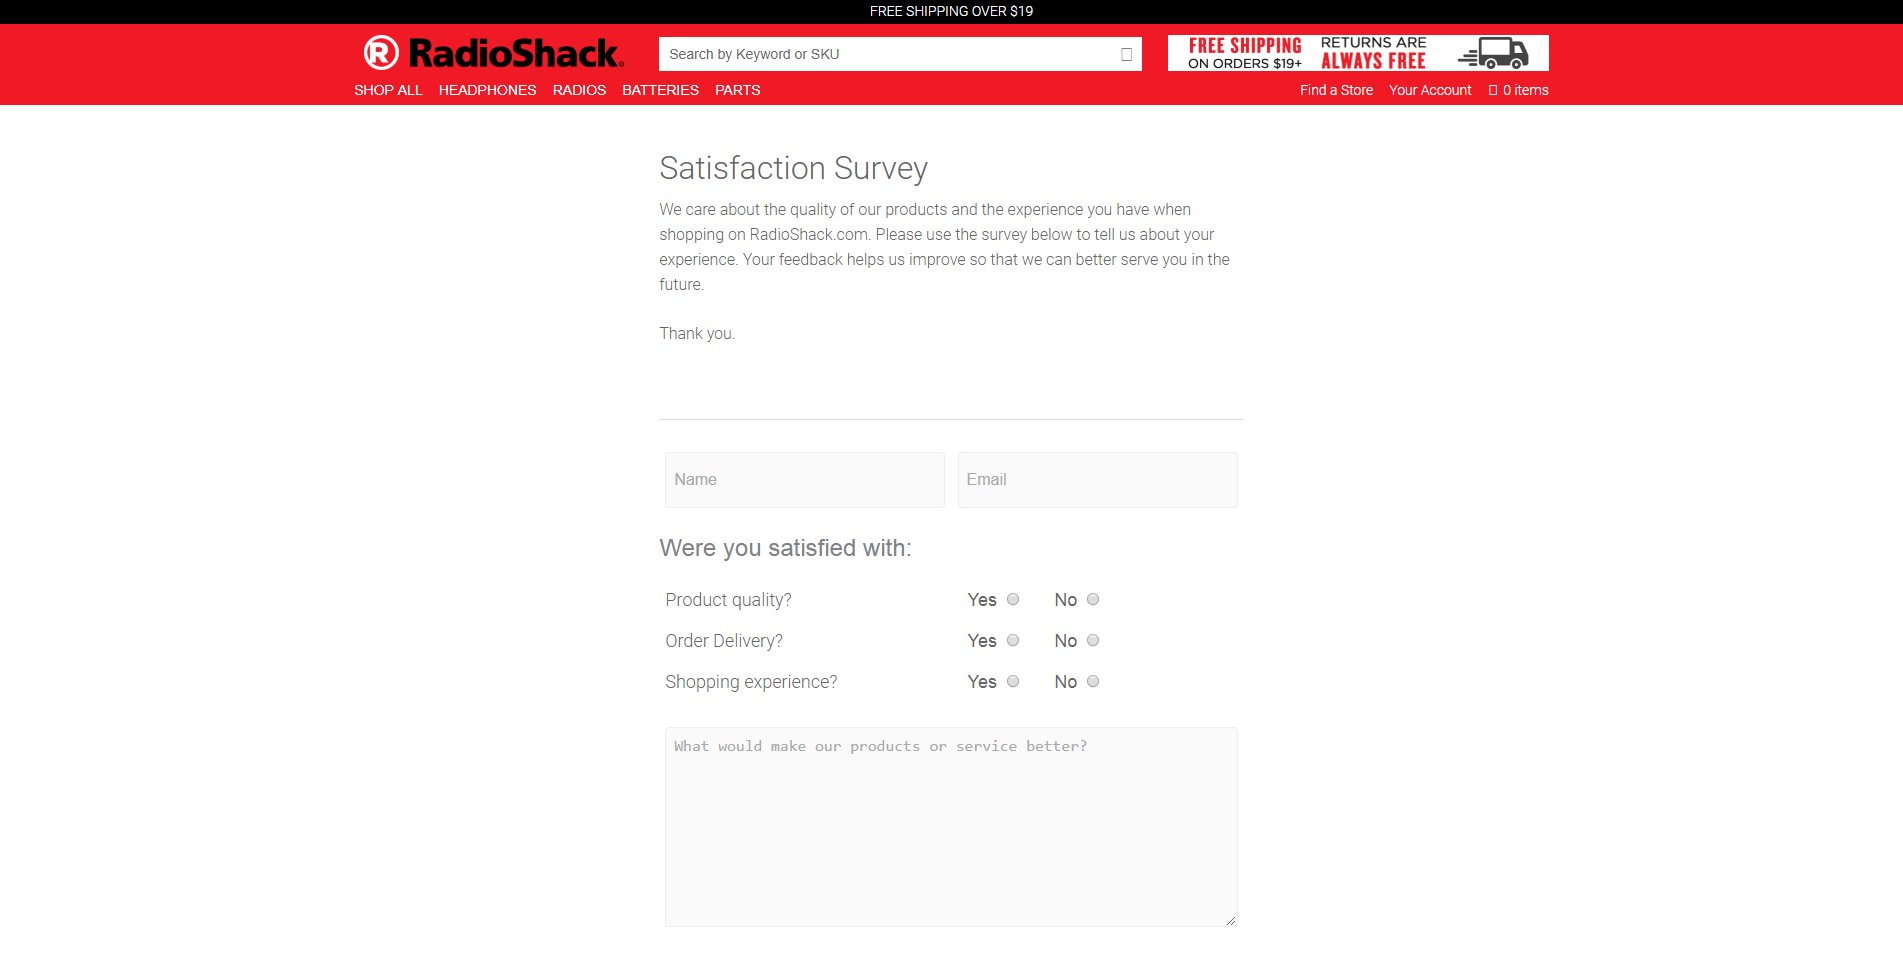 www.radioshack.com/pages/satisfaction-survey